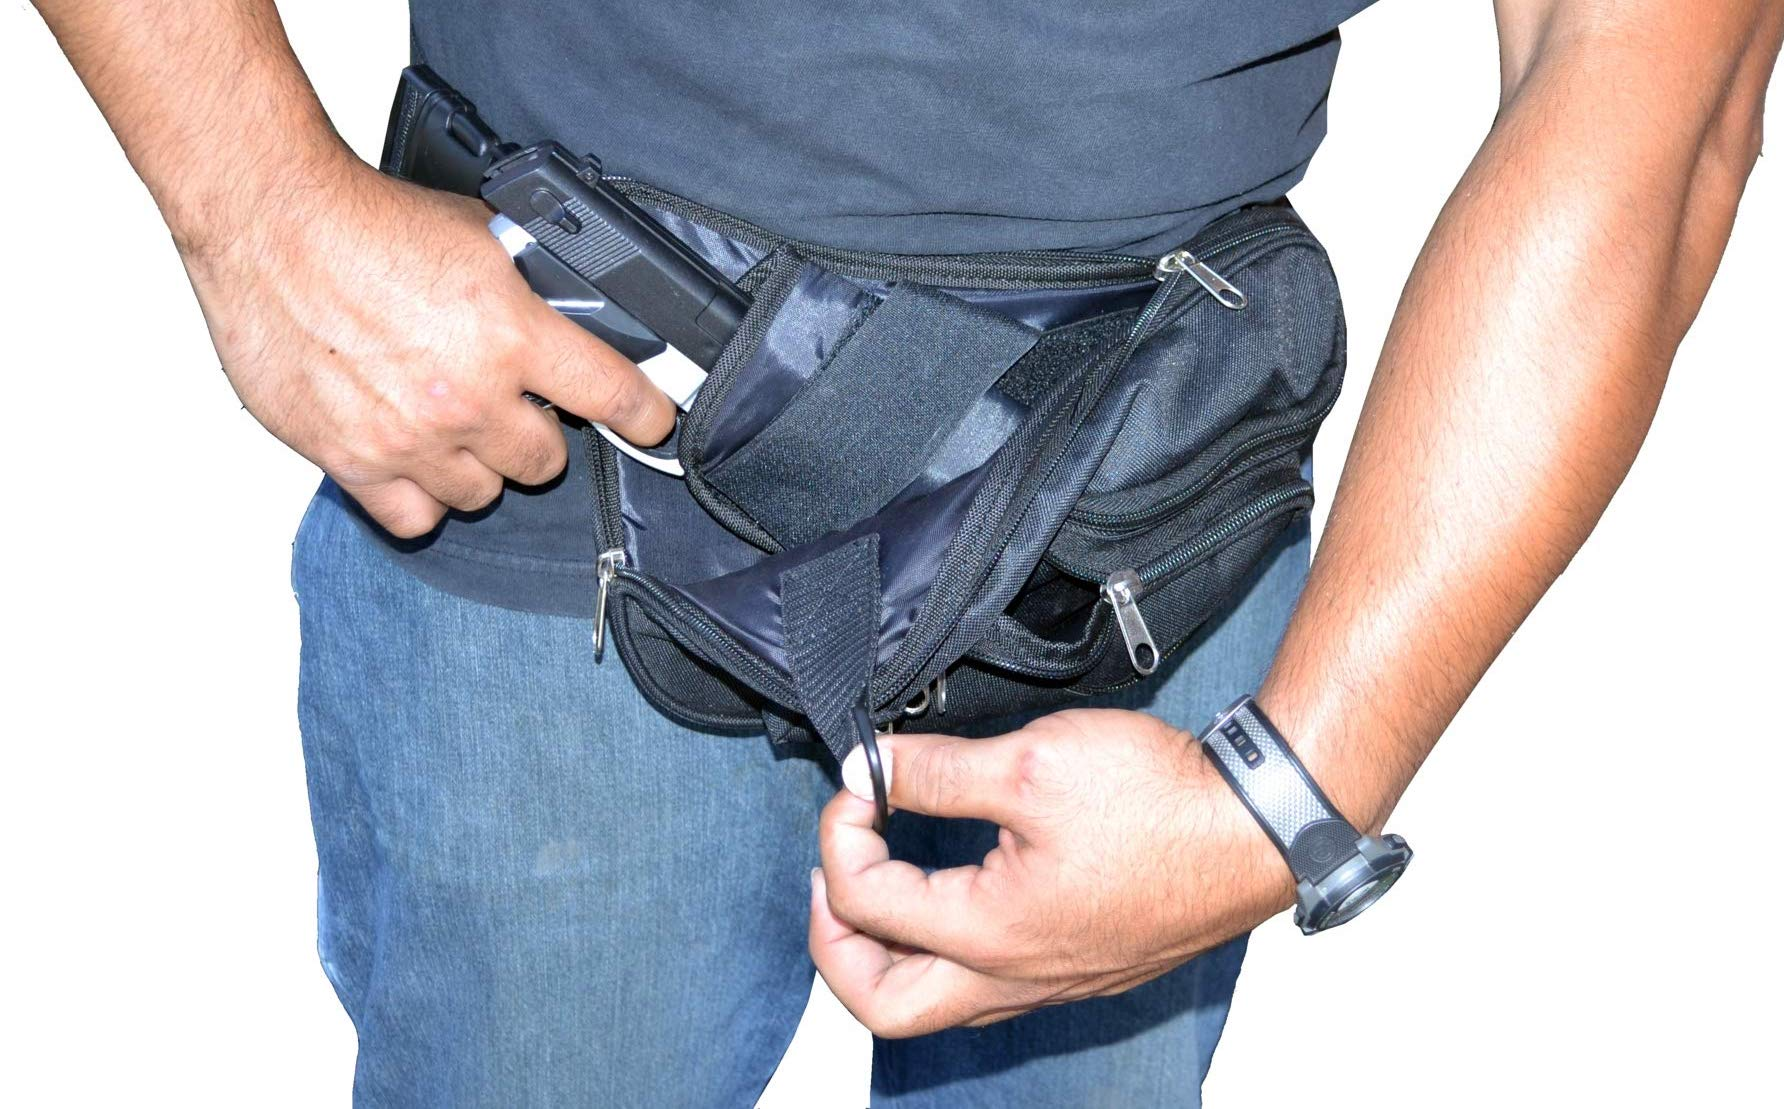 Top Concealed Carry Fanny Packs – Hands Free Concealment